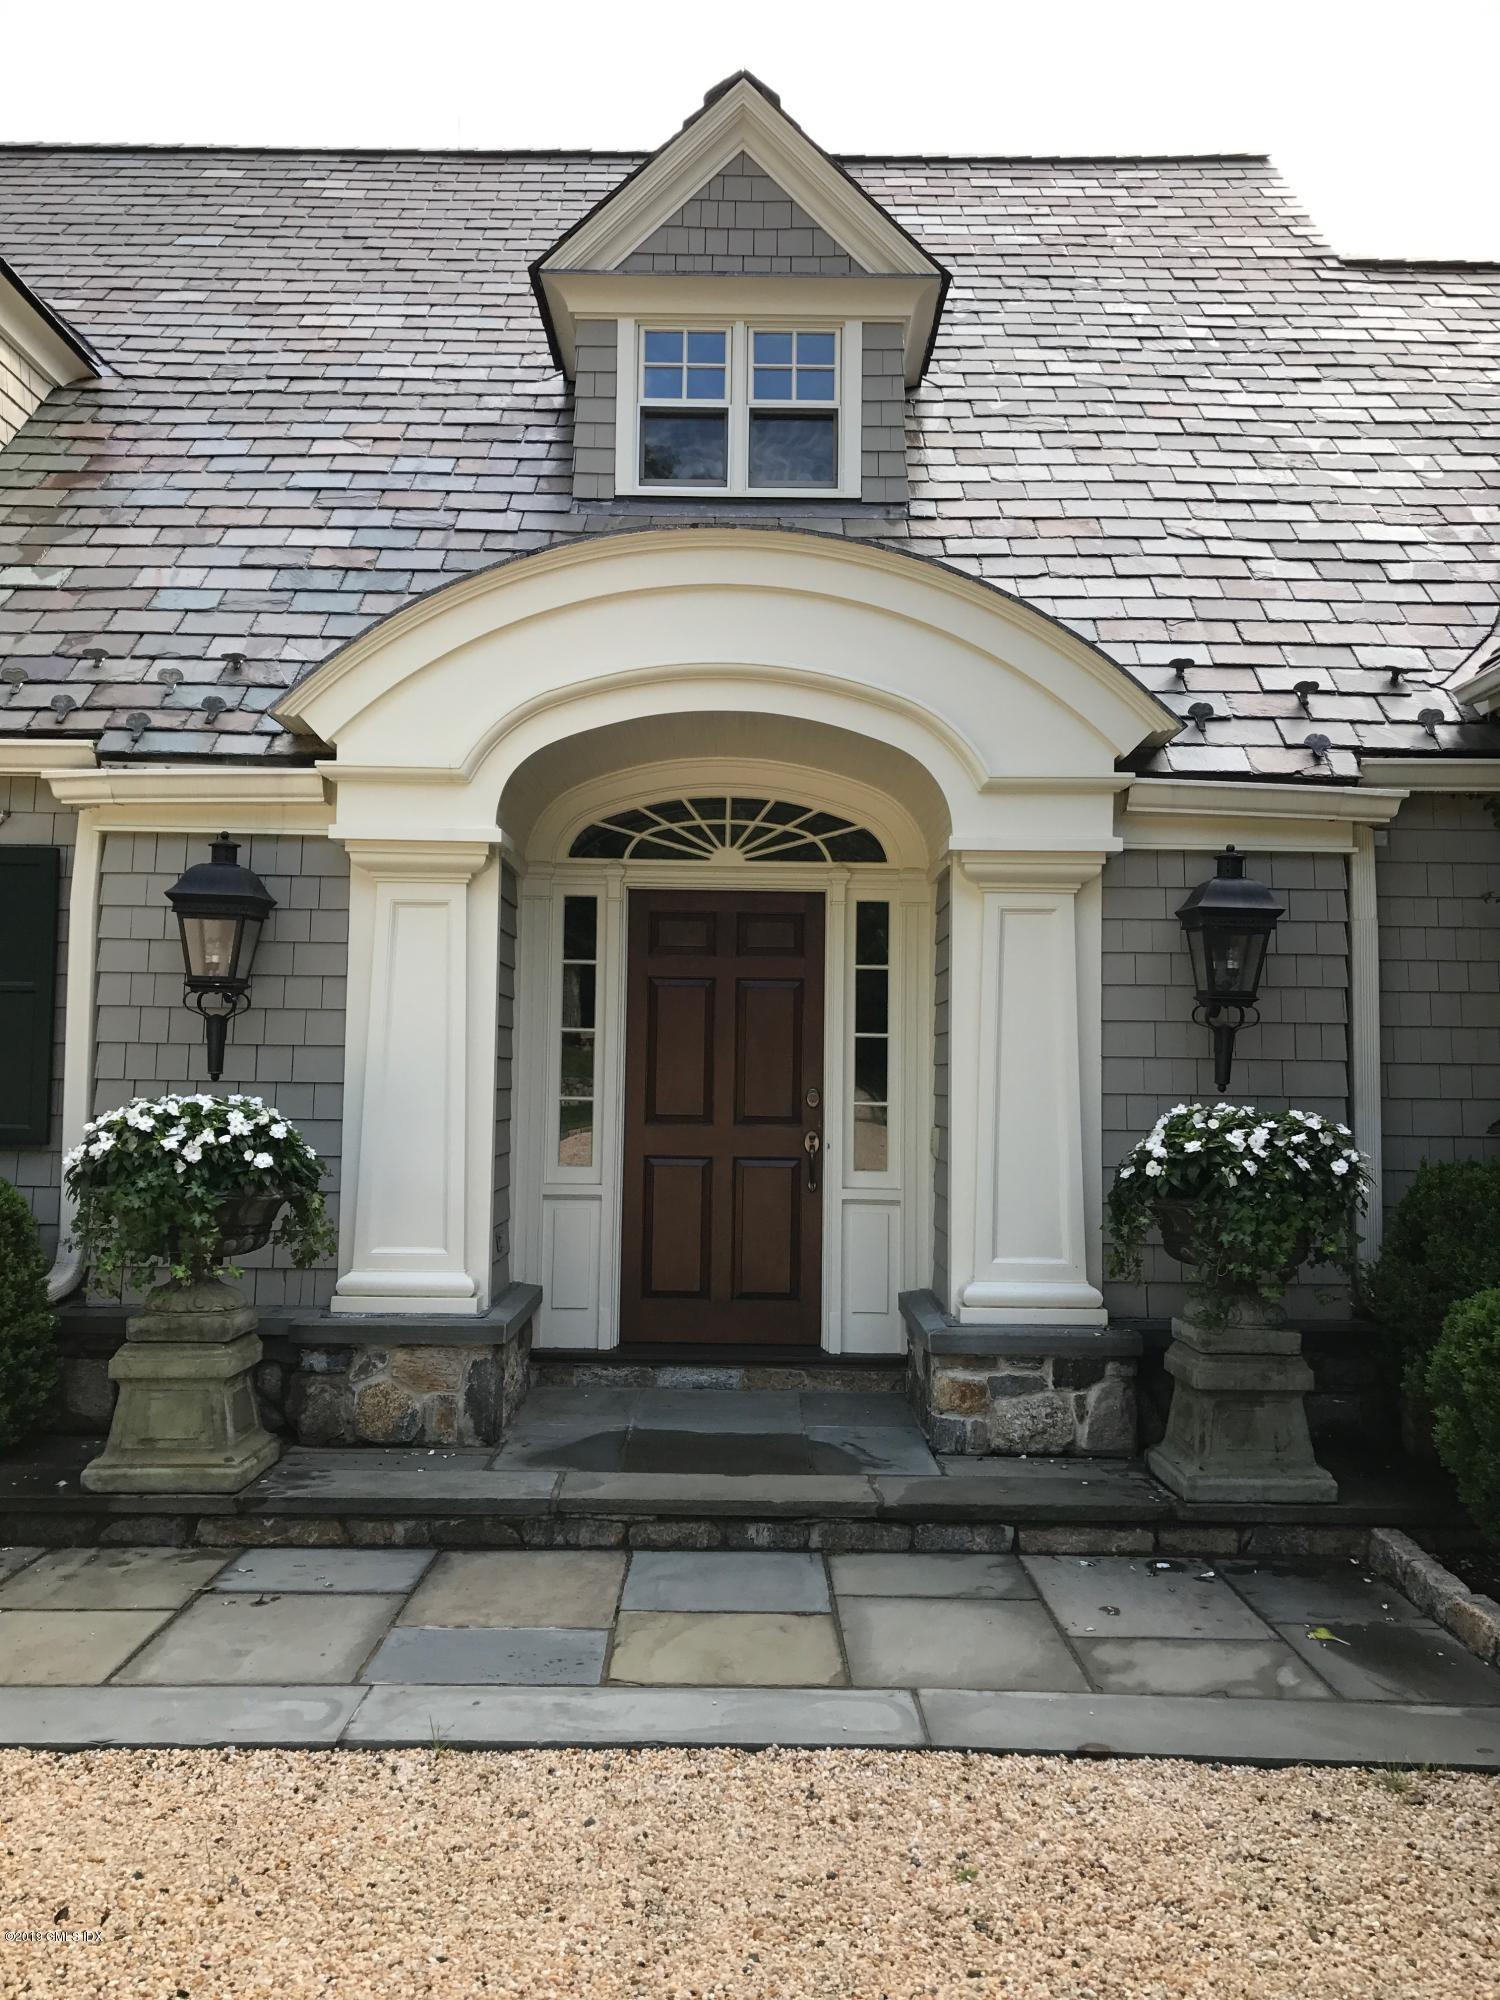 378 Taconic Road,Greenwich,Connecticut 06831,6 Bedrooms Bedrooms,5 BathroomsBathrooms,Single family,Taconic,106103